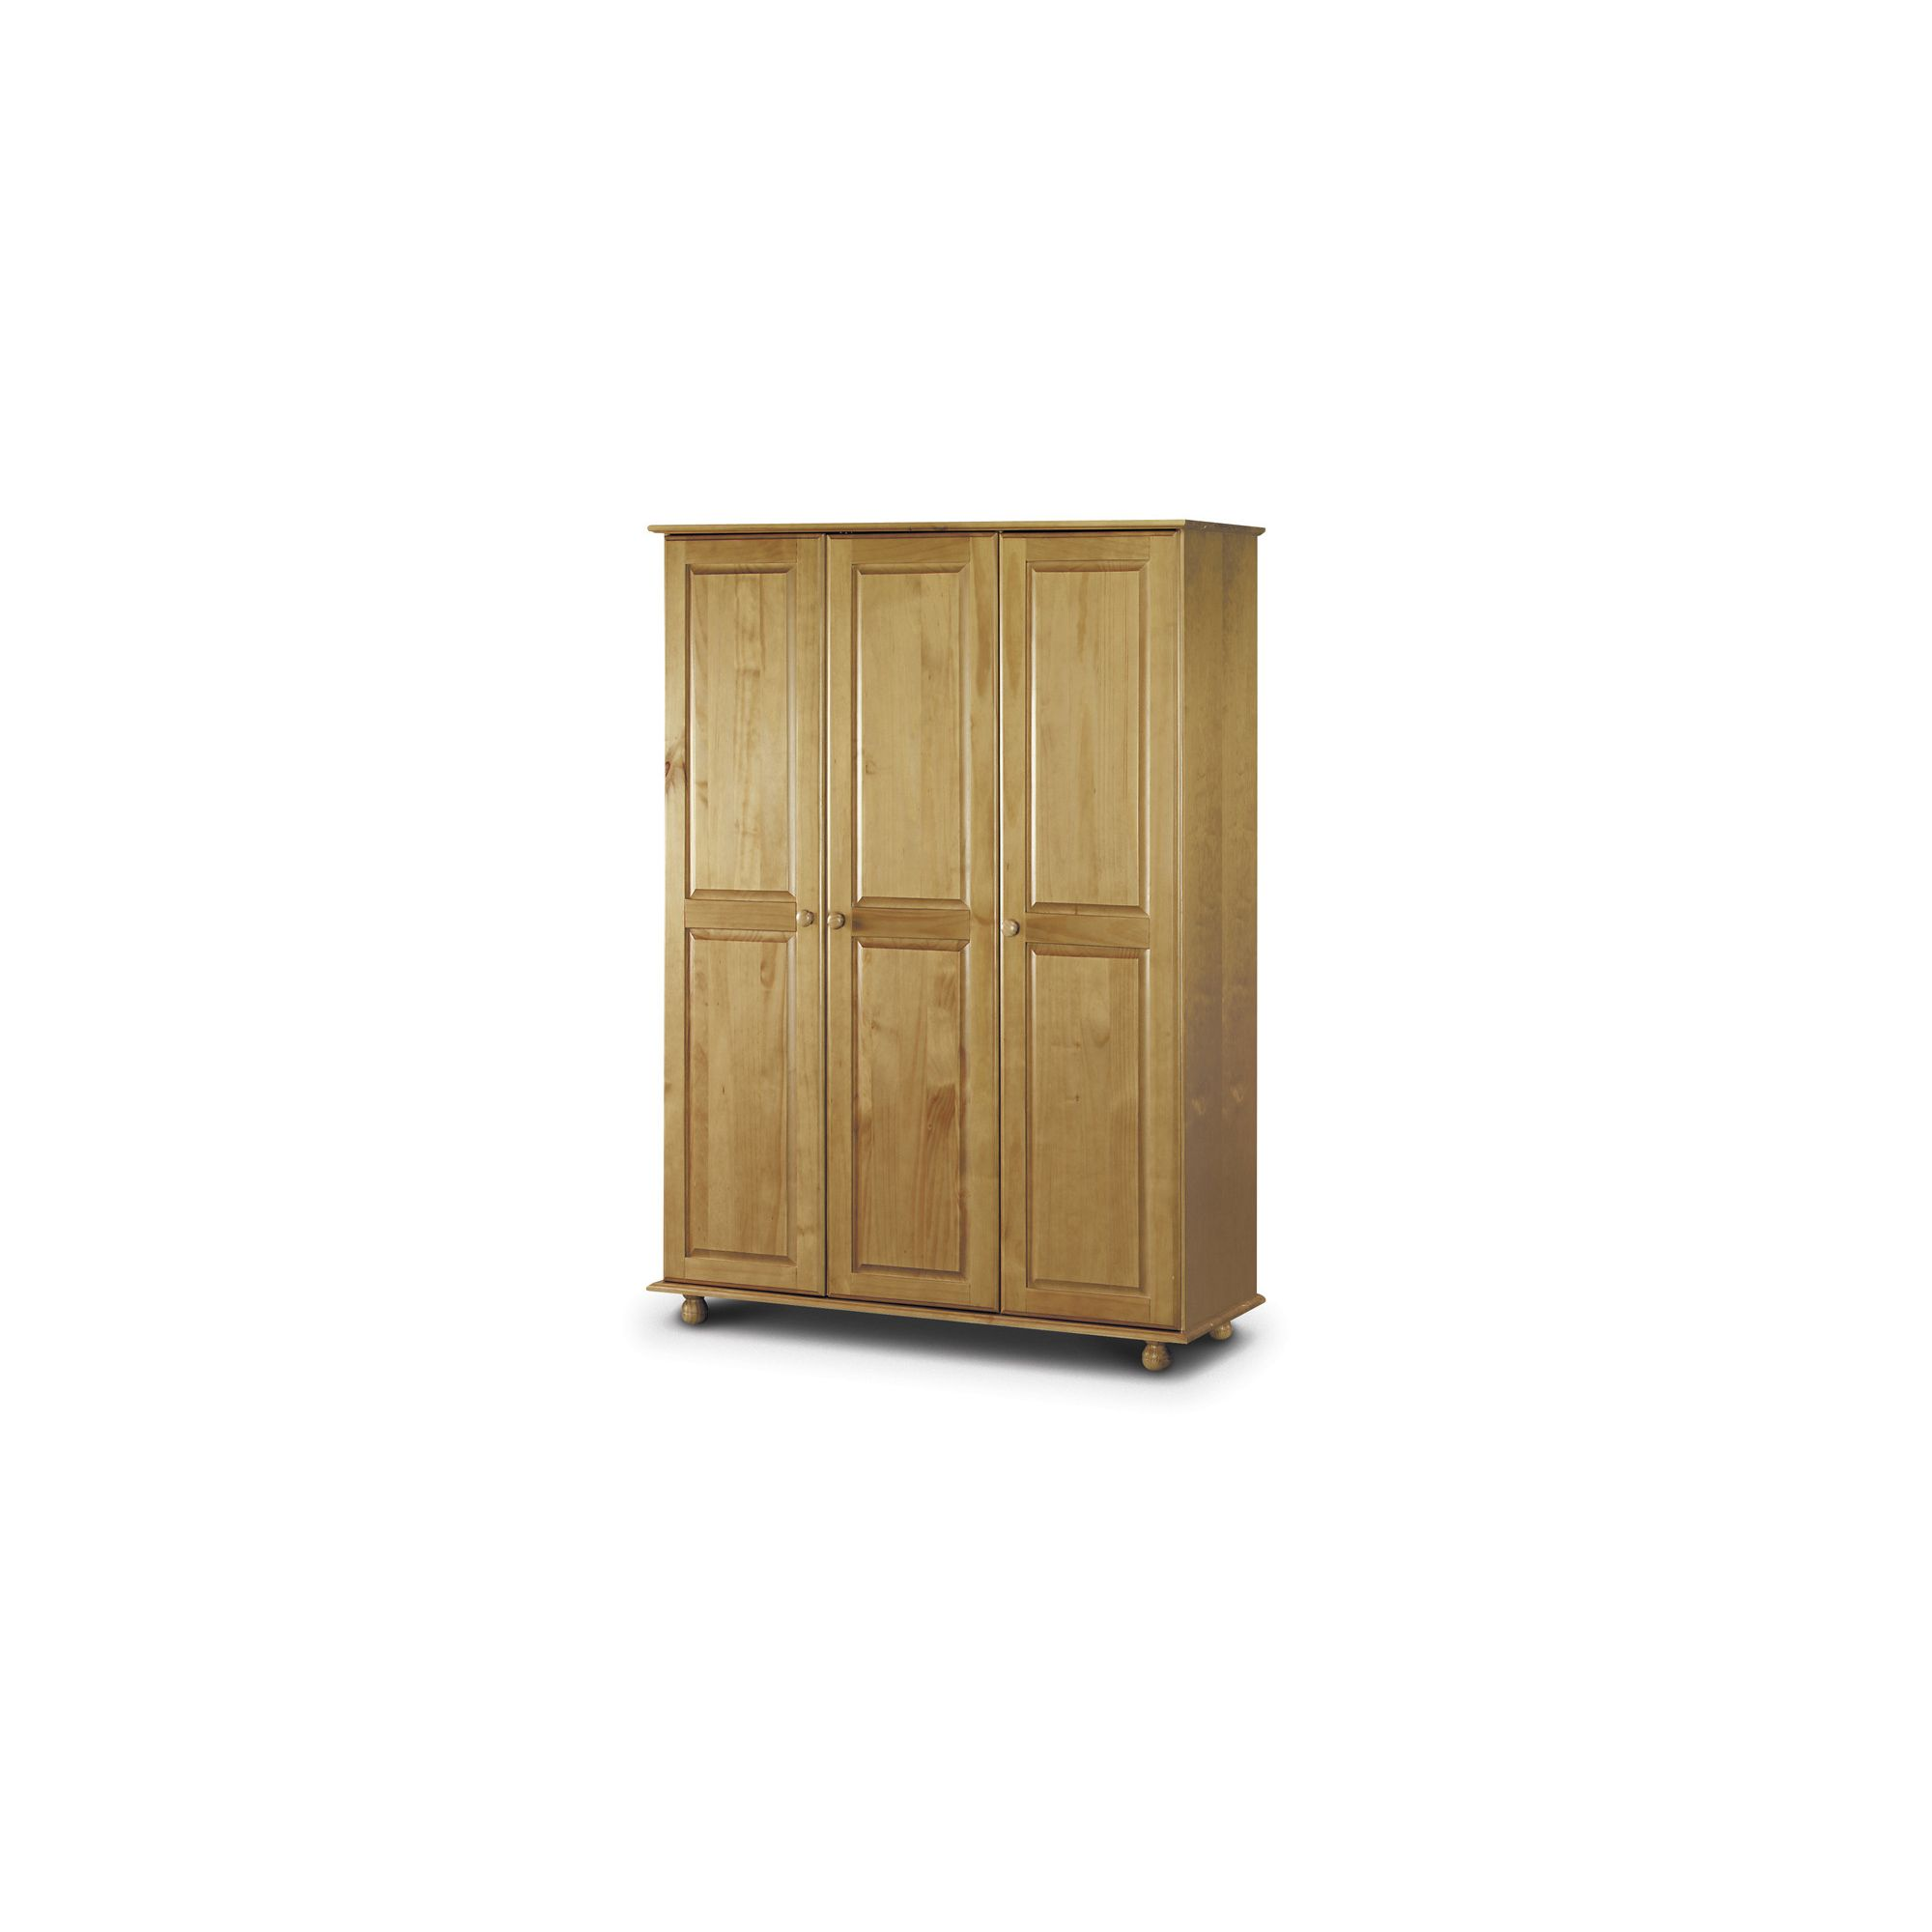 Julian Bowen Pickwick 3 Door All Hanging Wardrobes in Solid Pine at Tescos Direct